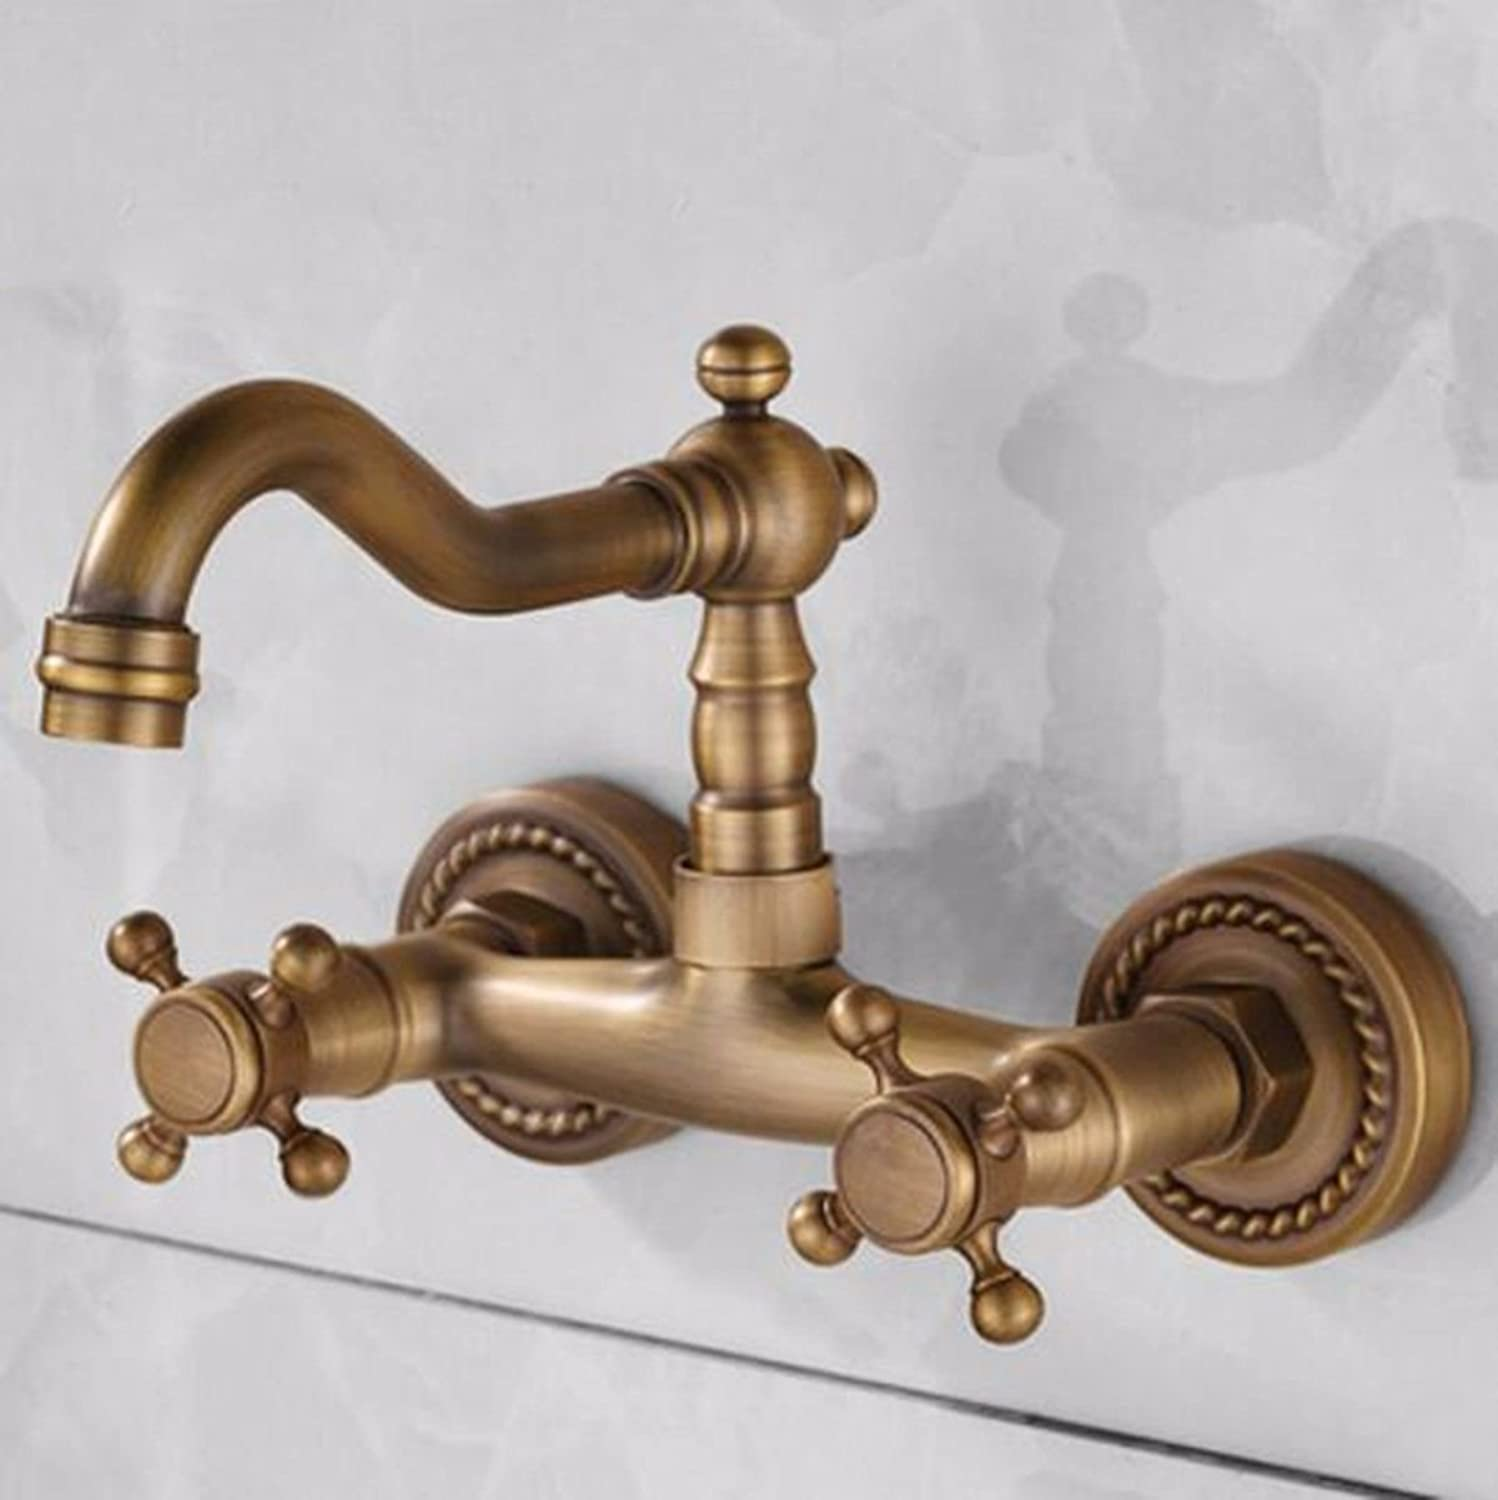 ETERNAL QUALITY Bathroom Sink Basin Tap Brass Mixer Tap Washroom Mixer Faucet The copper cold water into the slot WALL MOUNTED KITCHEN FAUCET antique hot and cold-water t